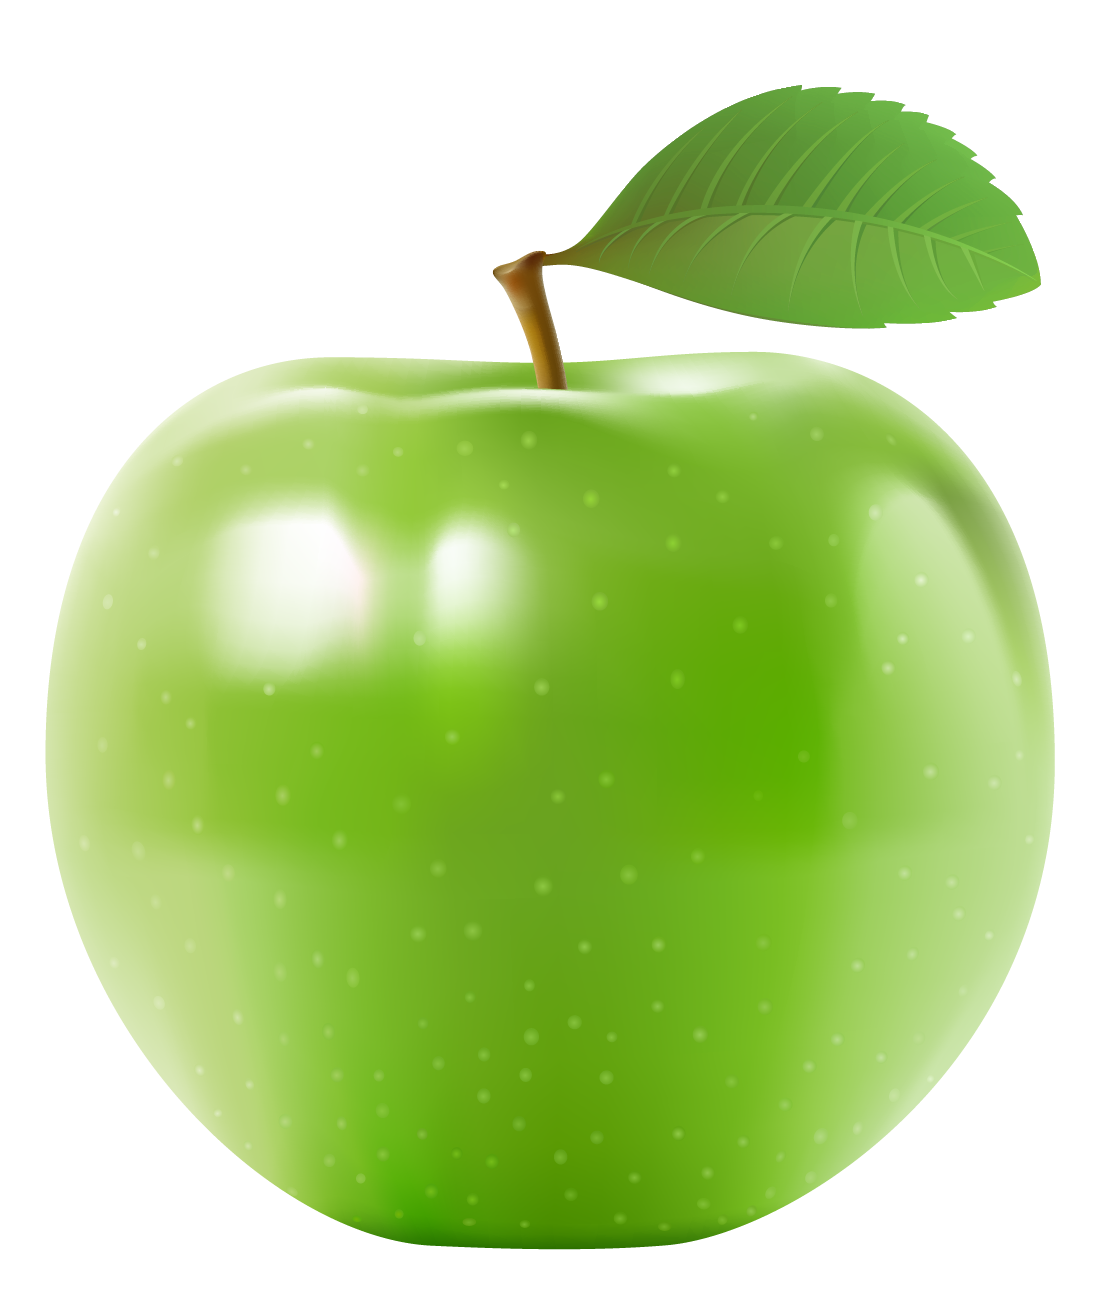 Apple · Apricot PNG - Apple Fruit PNG